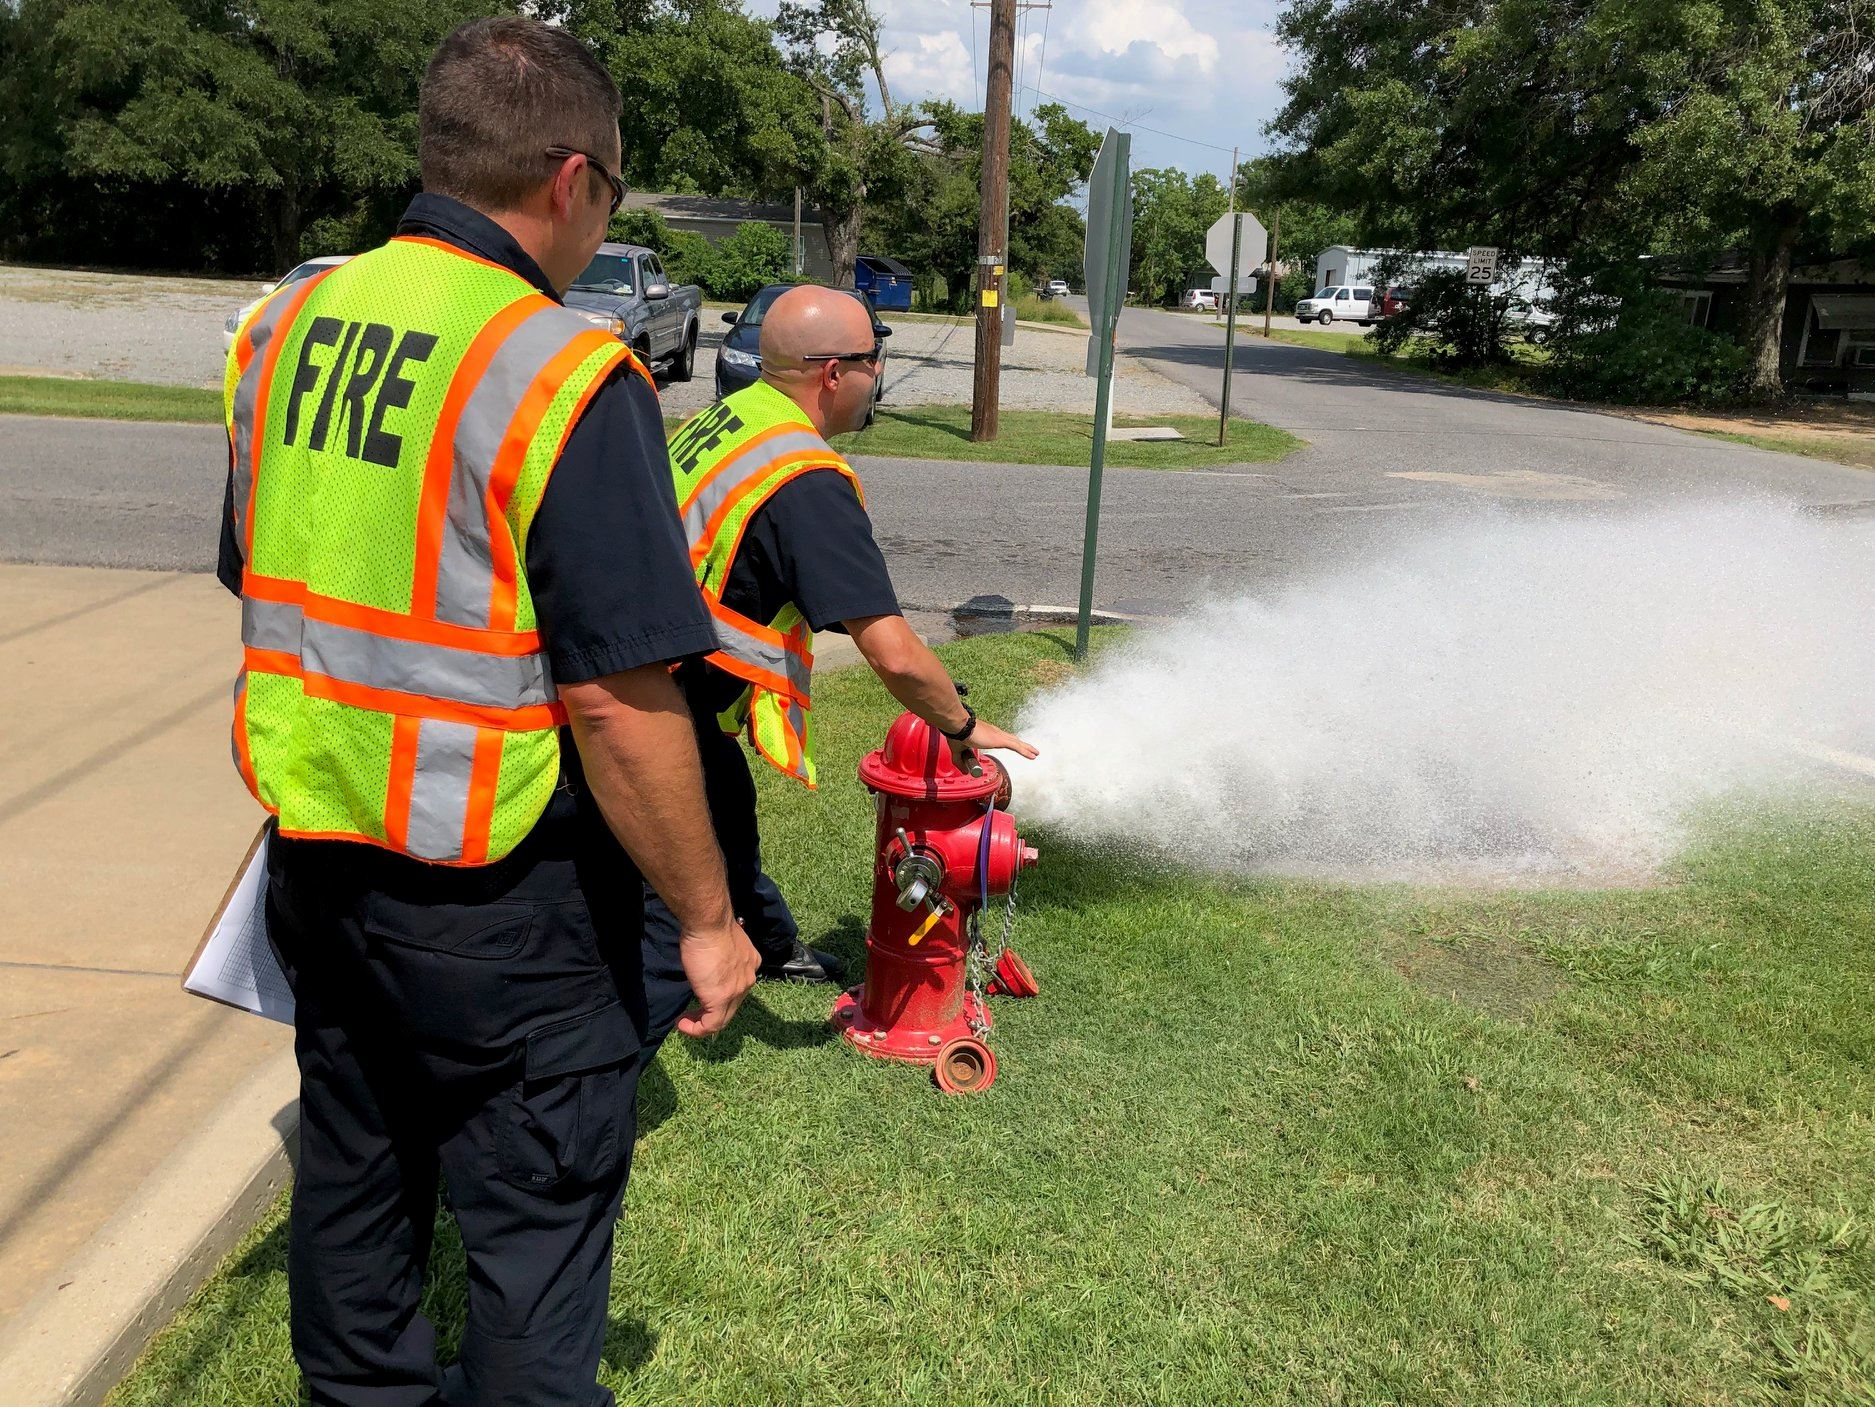 fire hydrant test